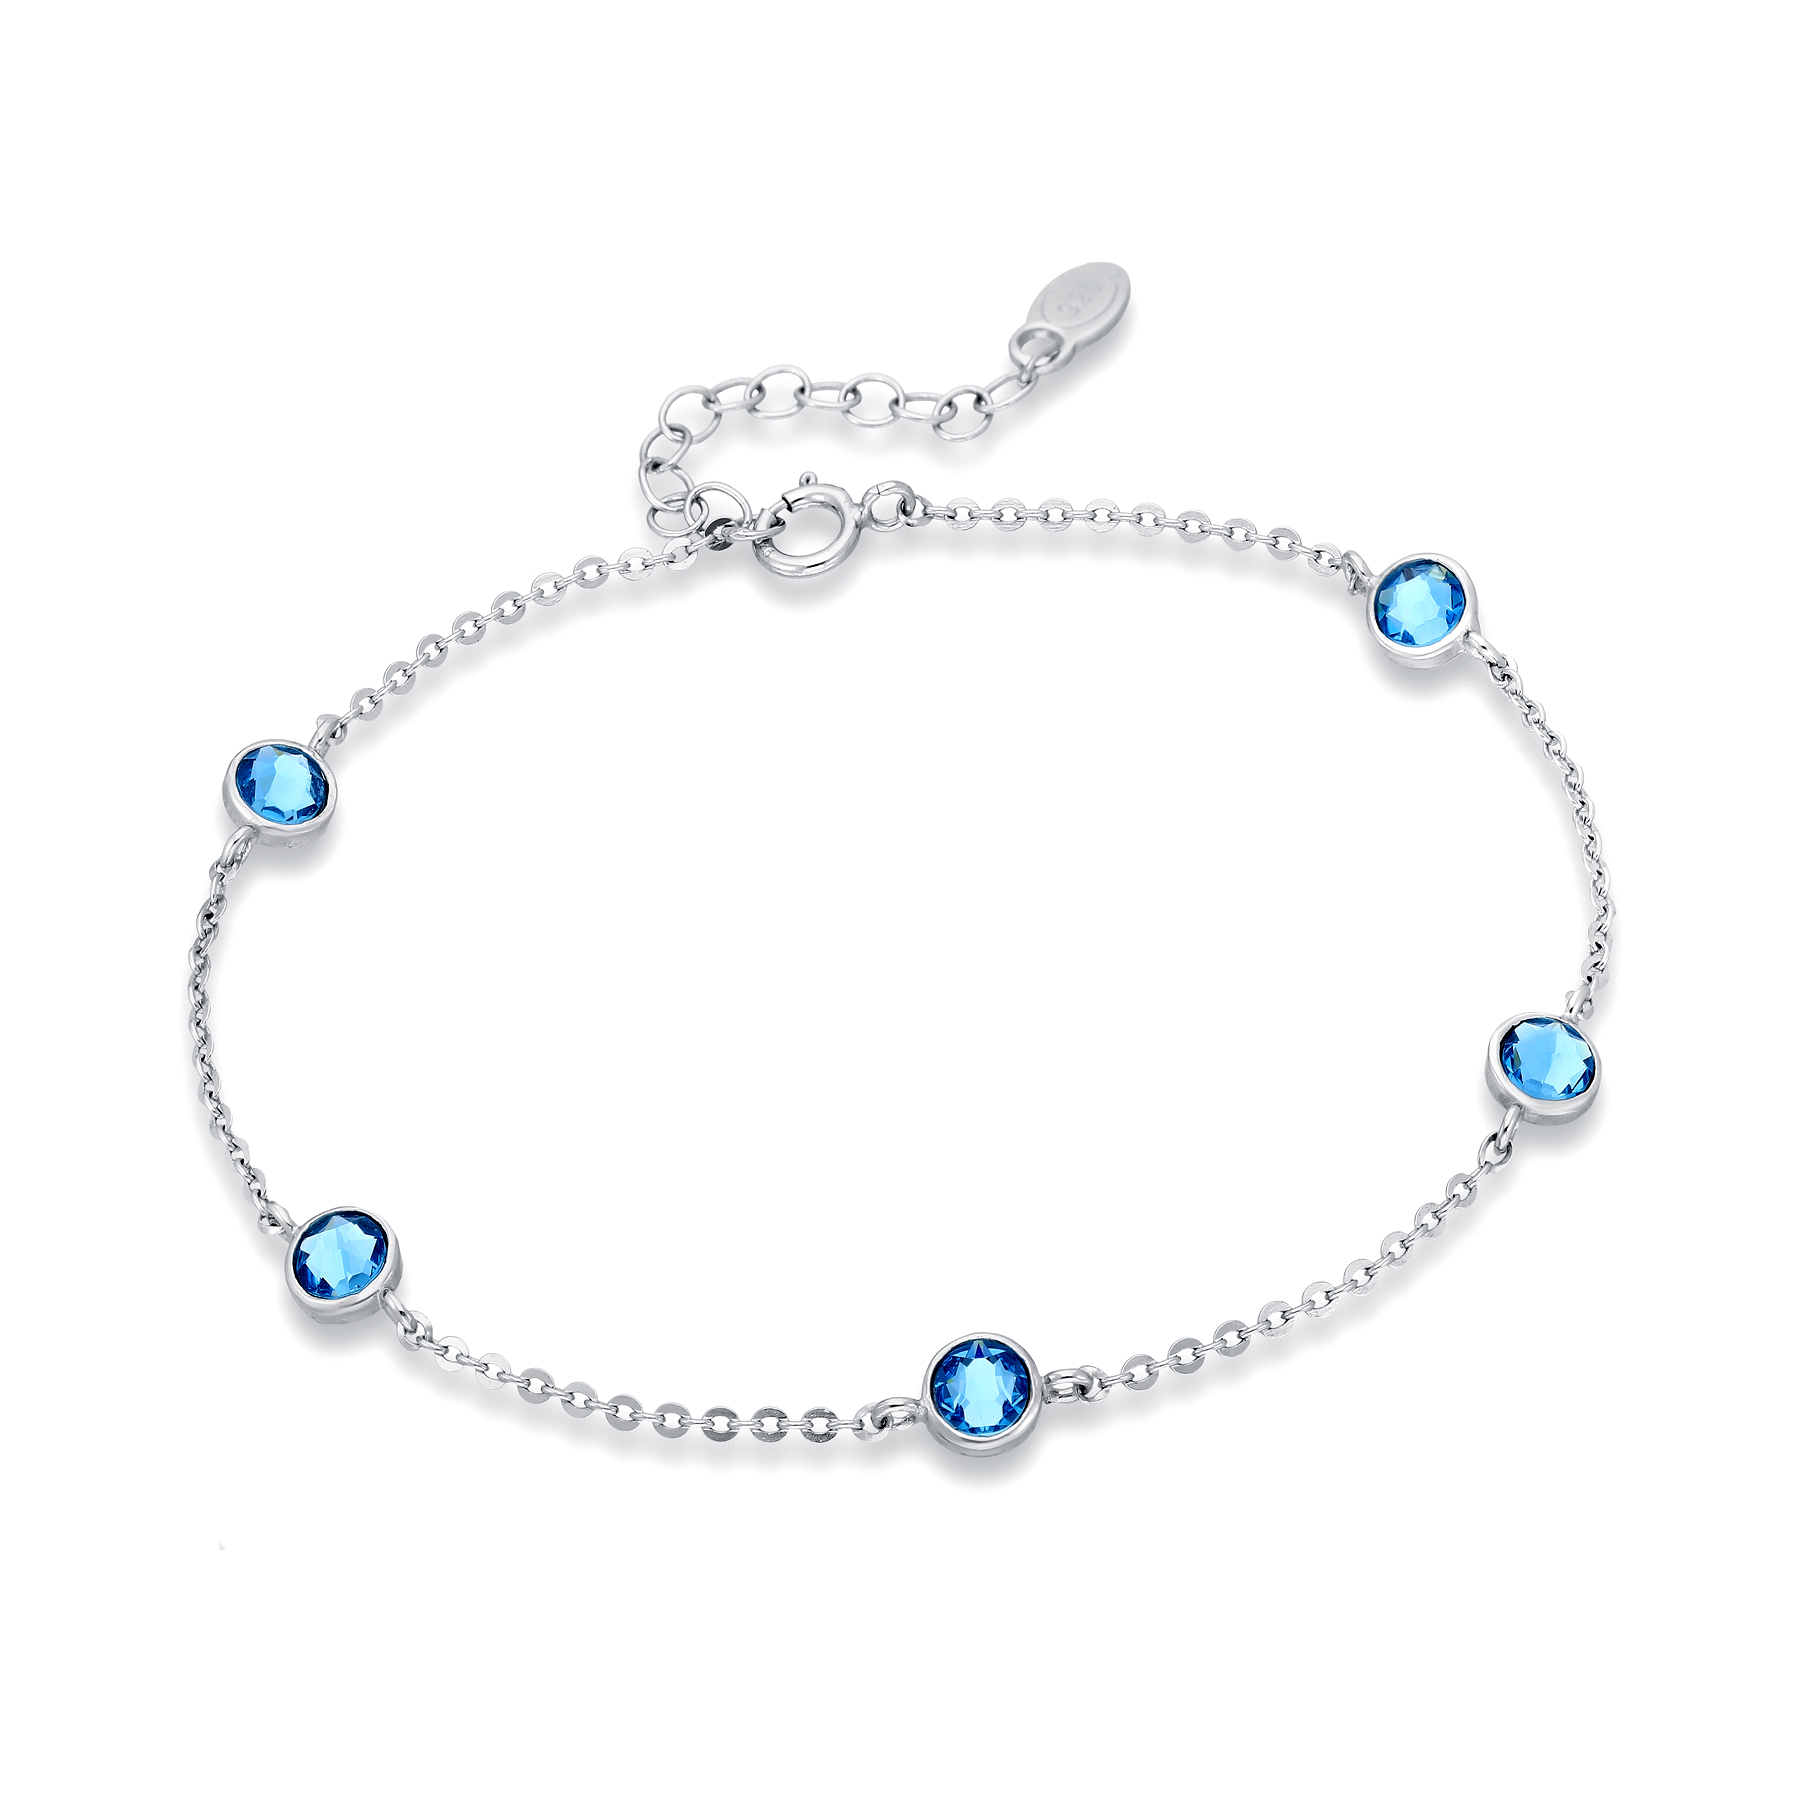 1583-352 - Sparkle by 7K - 925 Sterling Silver Bracelet Decorated With Verifiable Authentic Swarovski Crystals